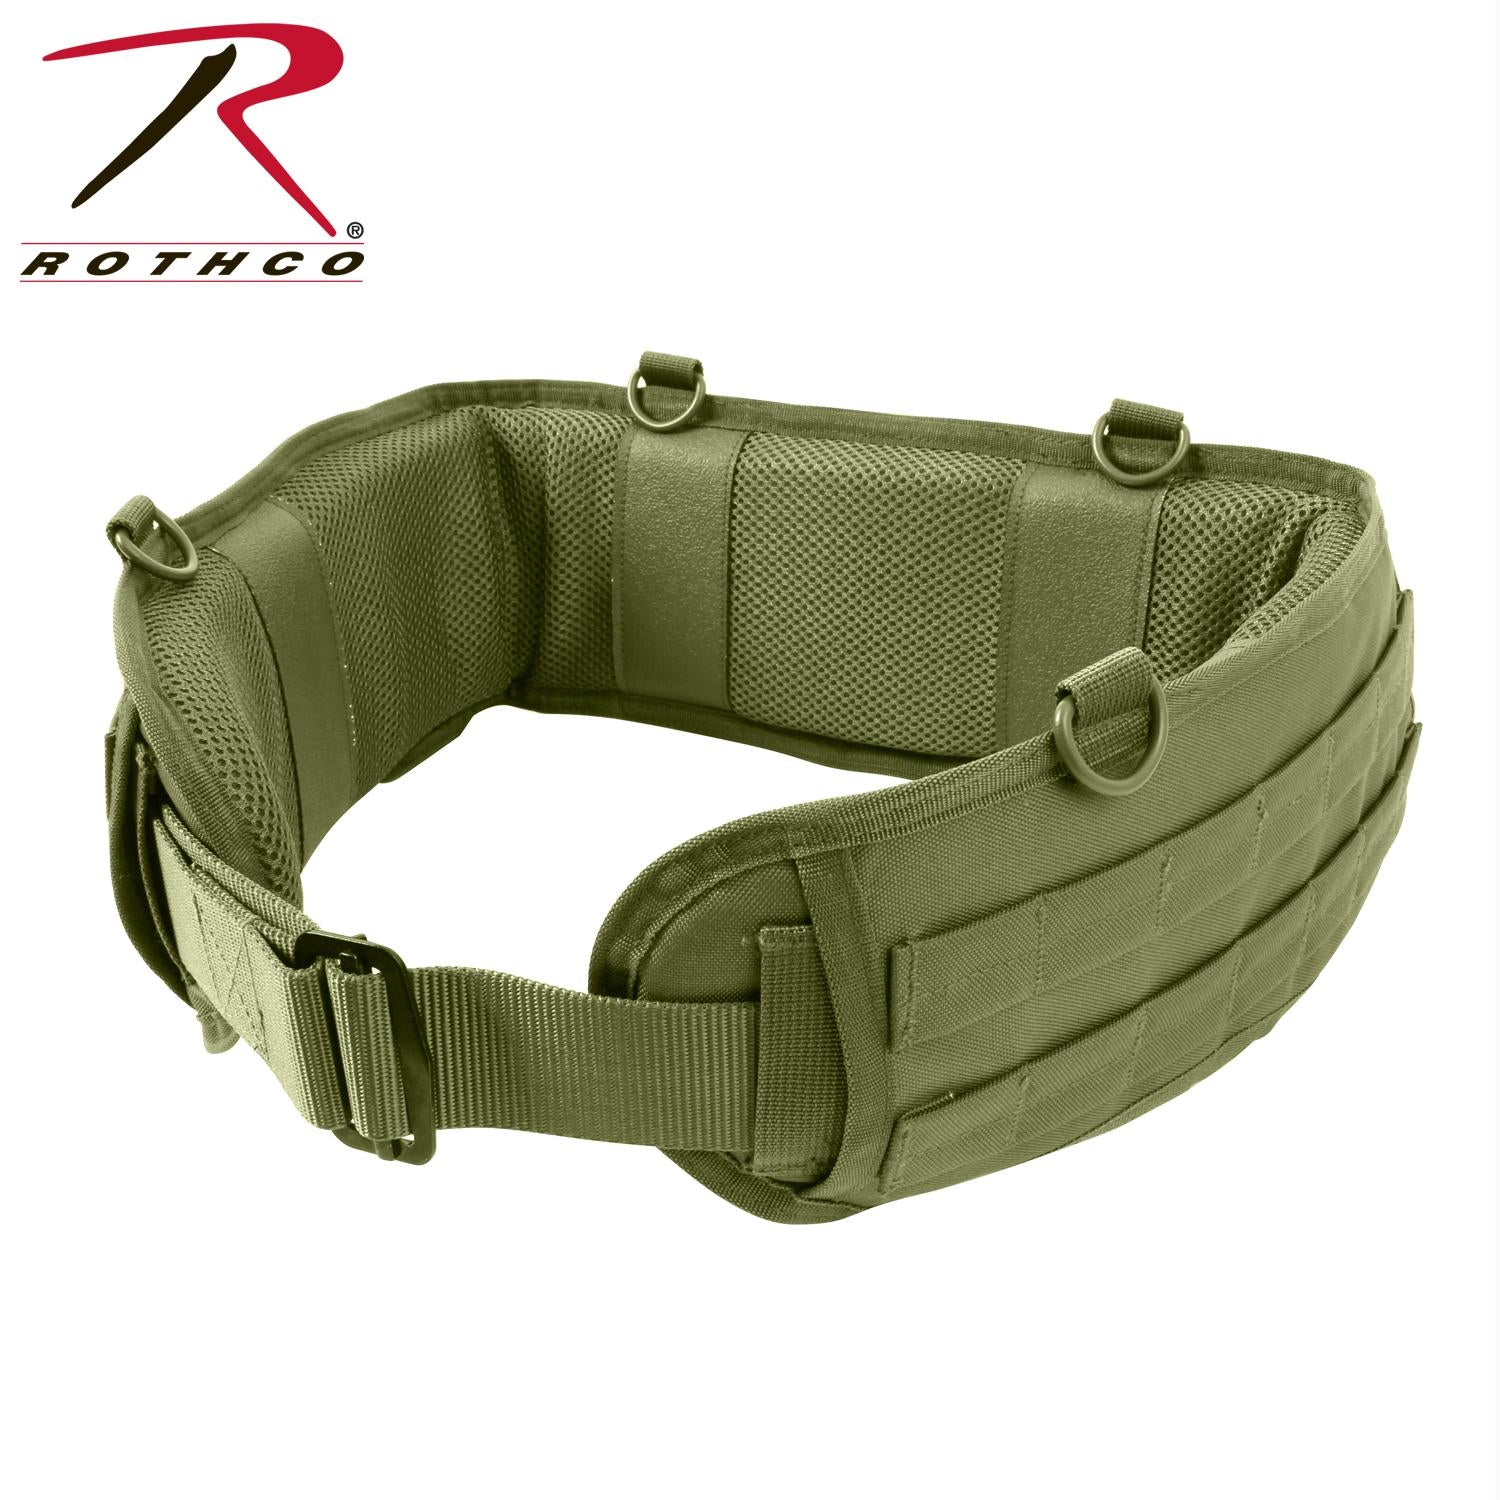 Rothco Tactical Battle Belt - Olive Drab / M